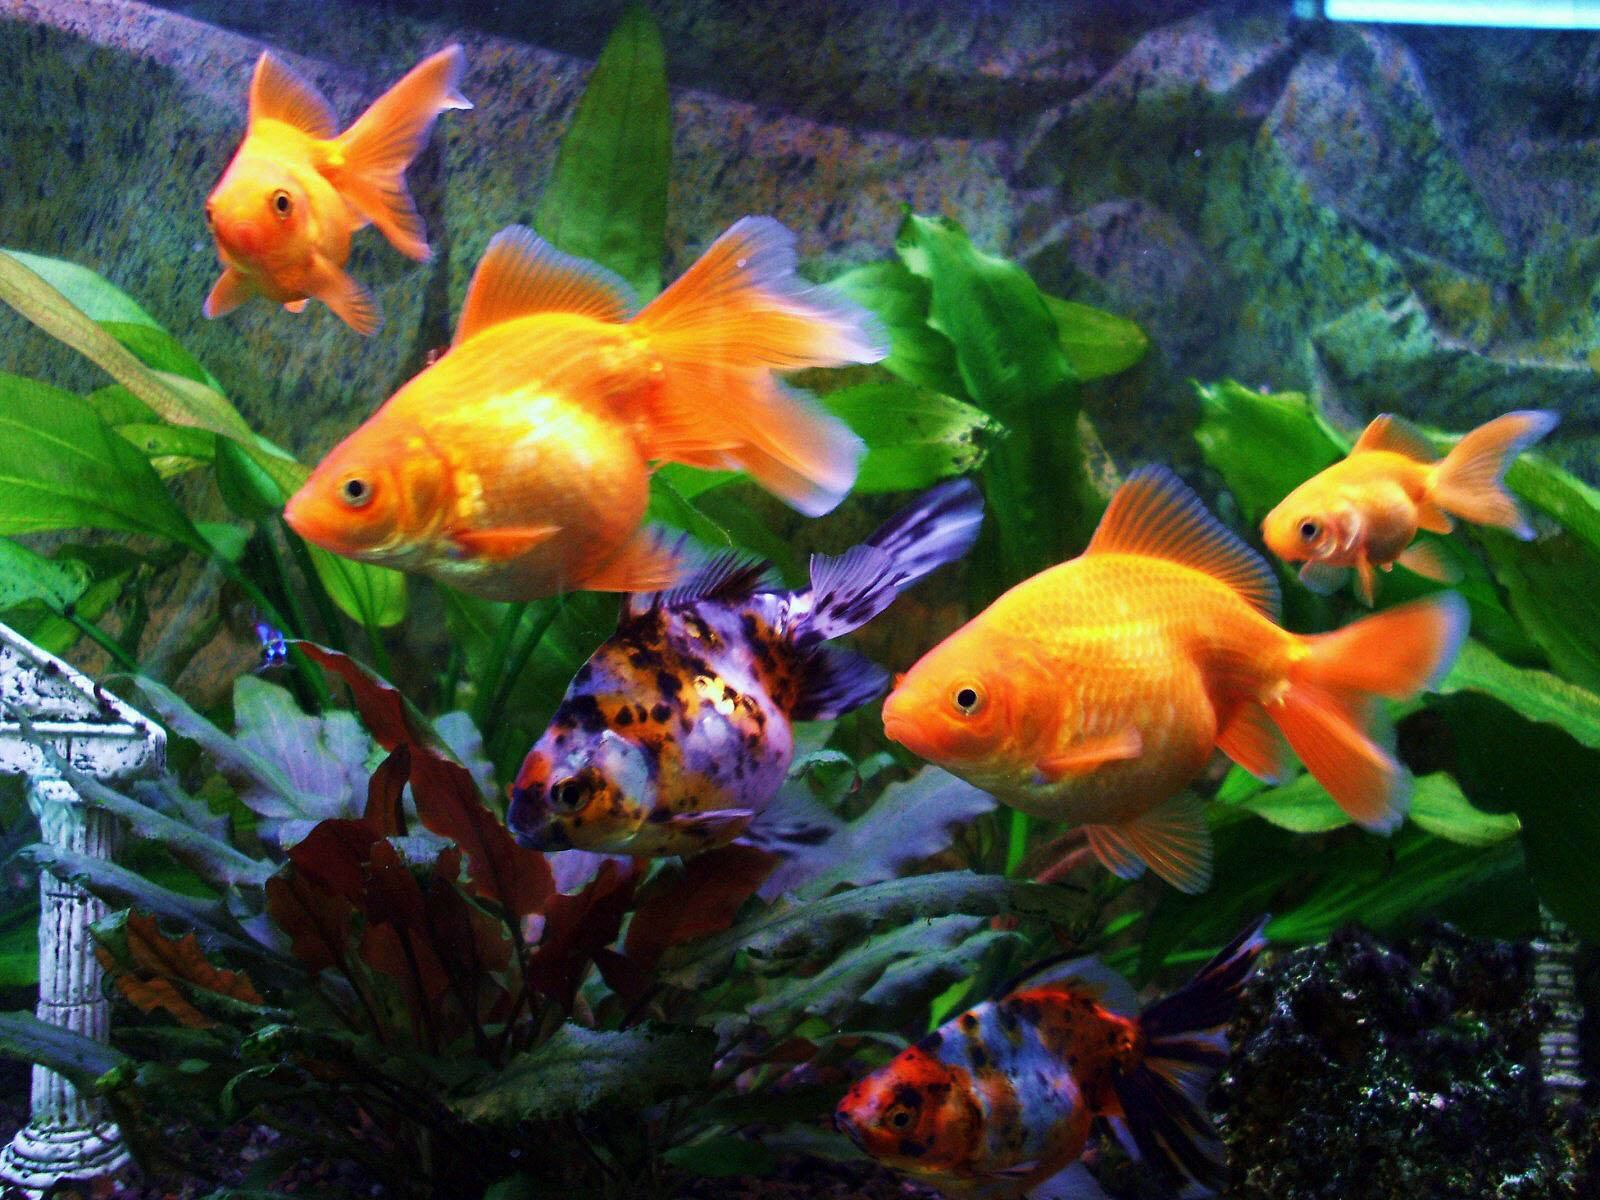 Download Every Iphone Live Wallpaper Live Fish Iphone: Pin By PHOTOS ARE US ! On AQUARIUM FISH !!!!